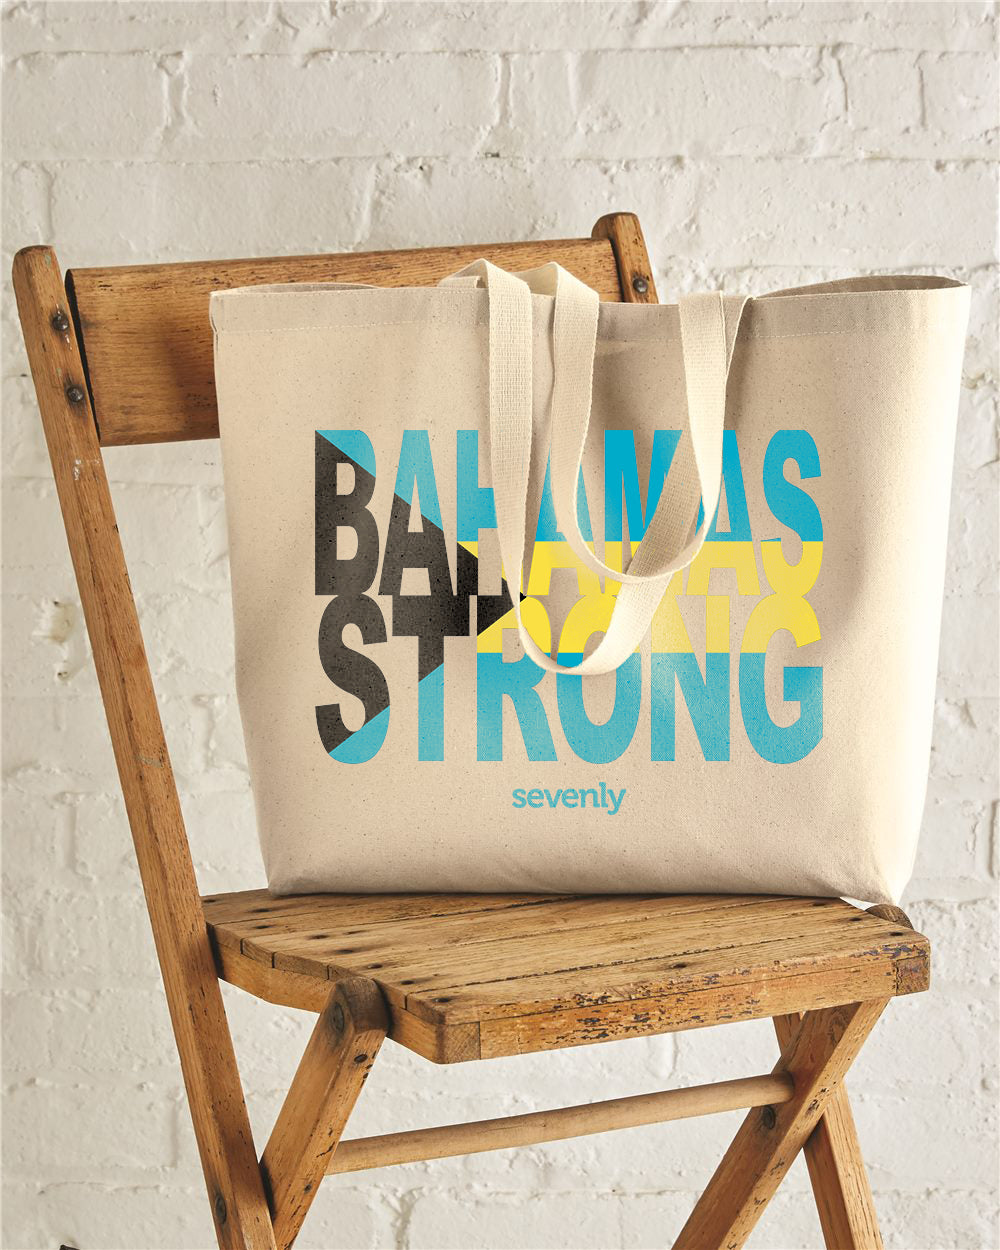 Bahamas Strong Flag Jumbo Cotton Canvas Tote Bag